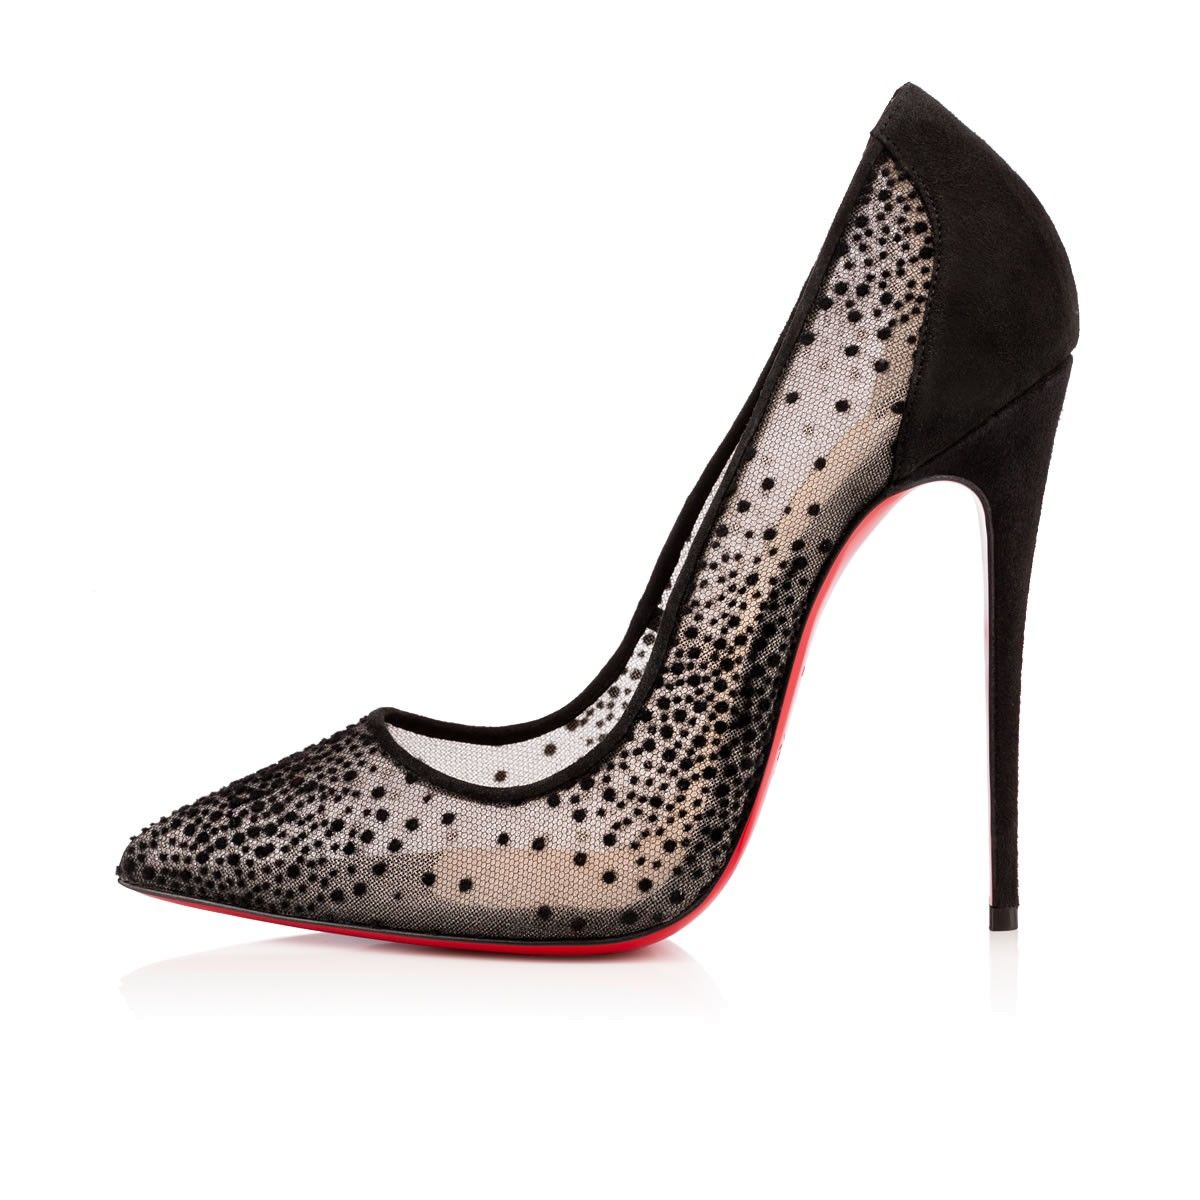 christian louboutin shoes online shop